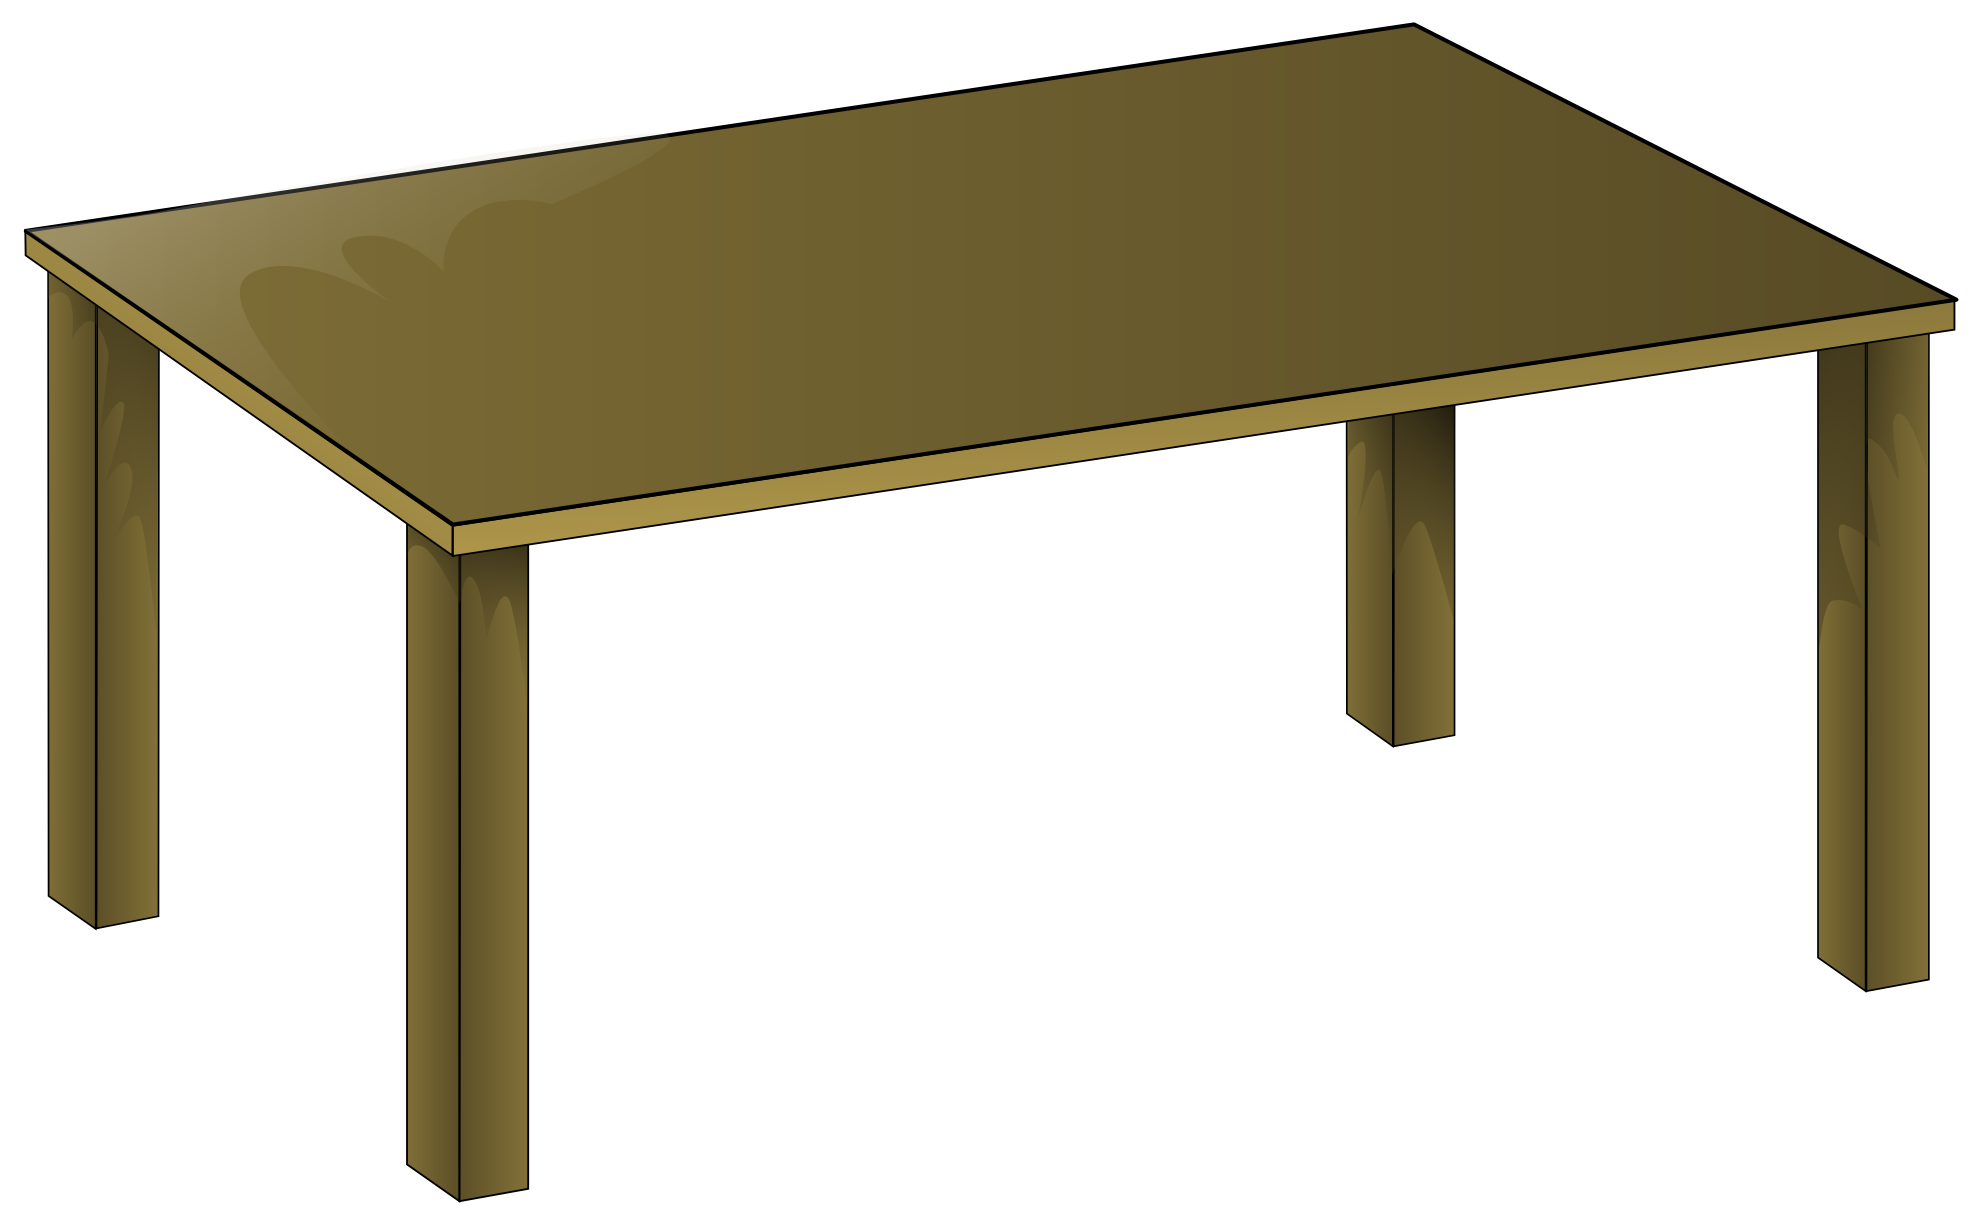 Panda free images roundtableclipart. Finger clipart table